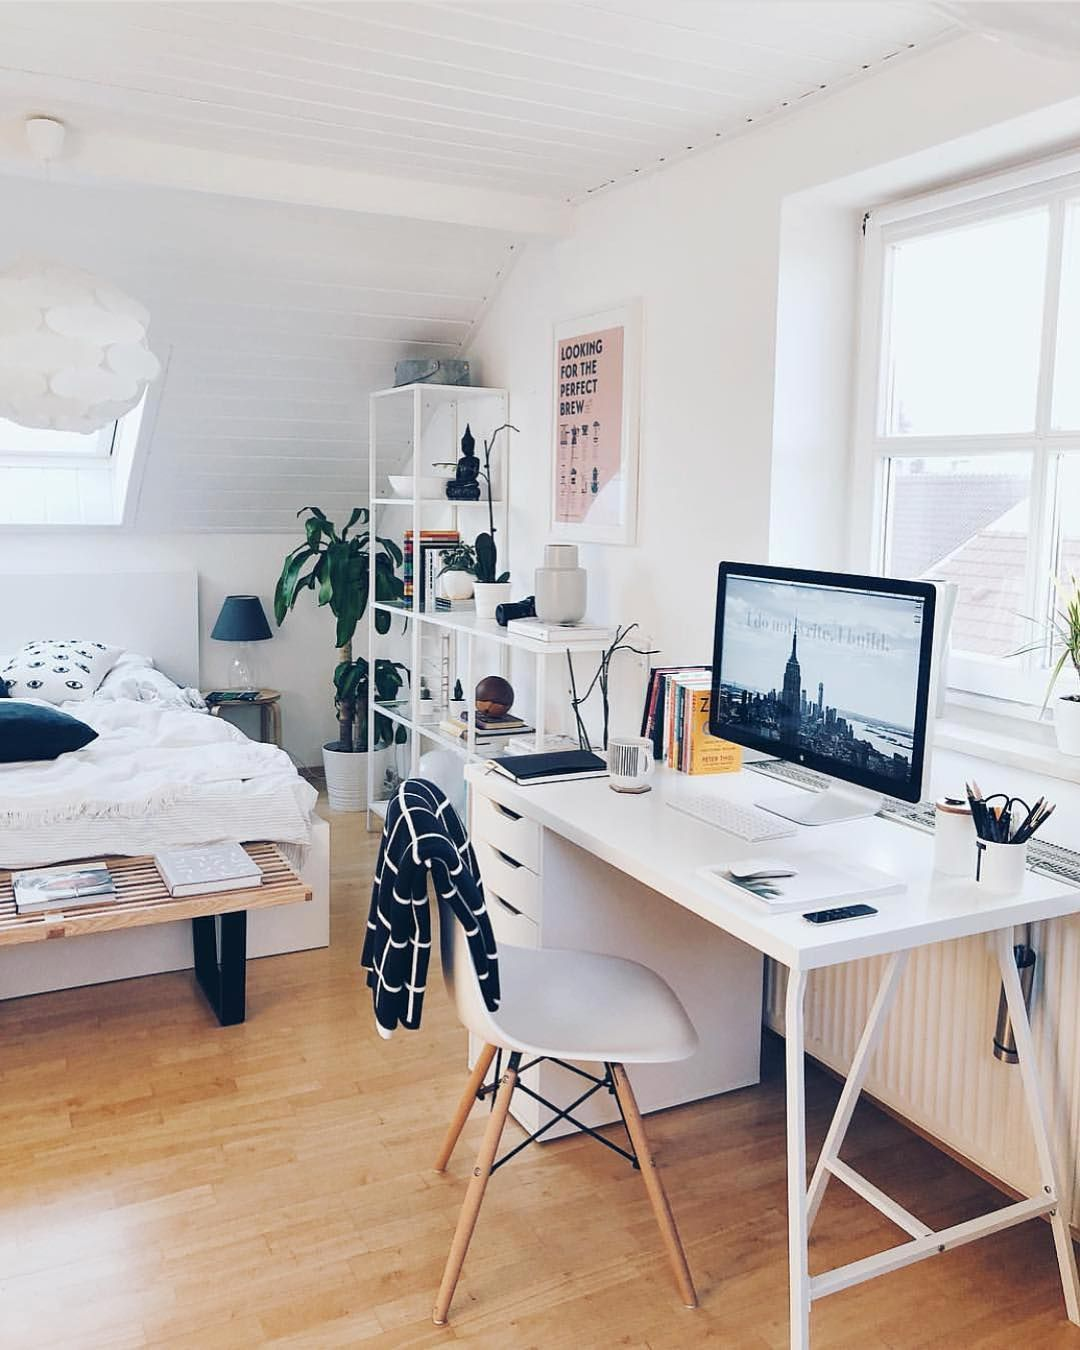 Bedroom And Workspace Setup By @tinalkeen